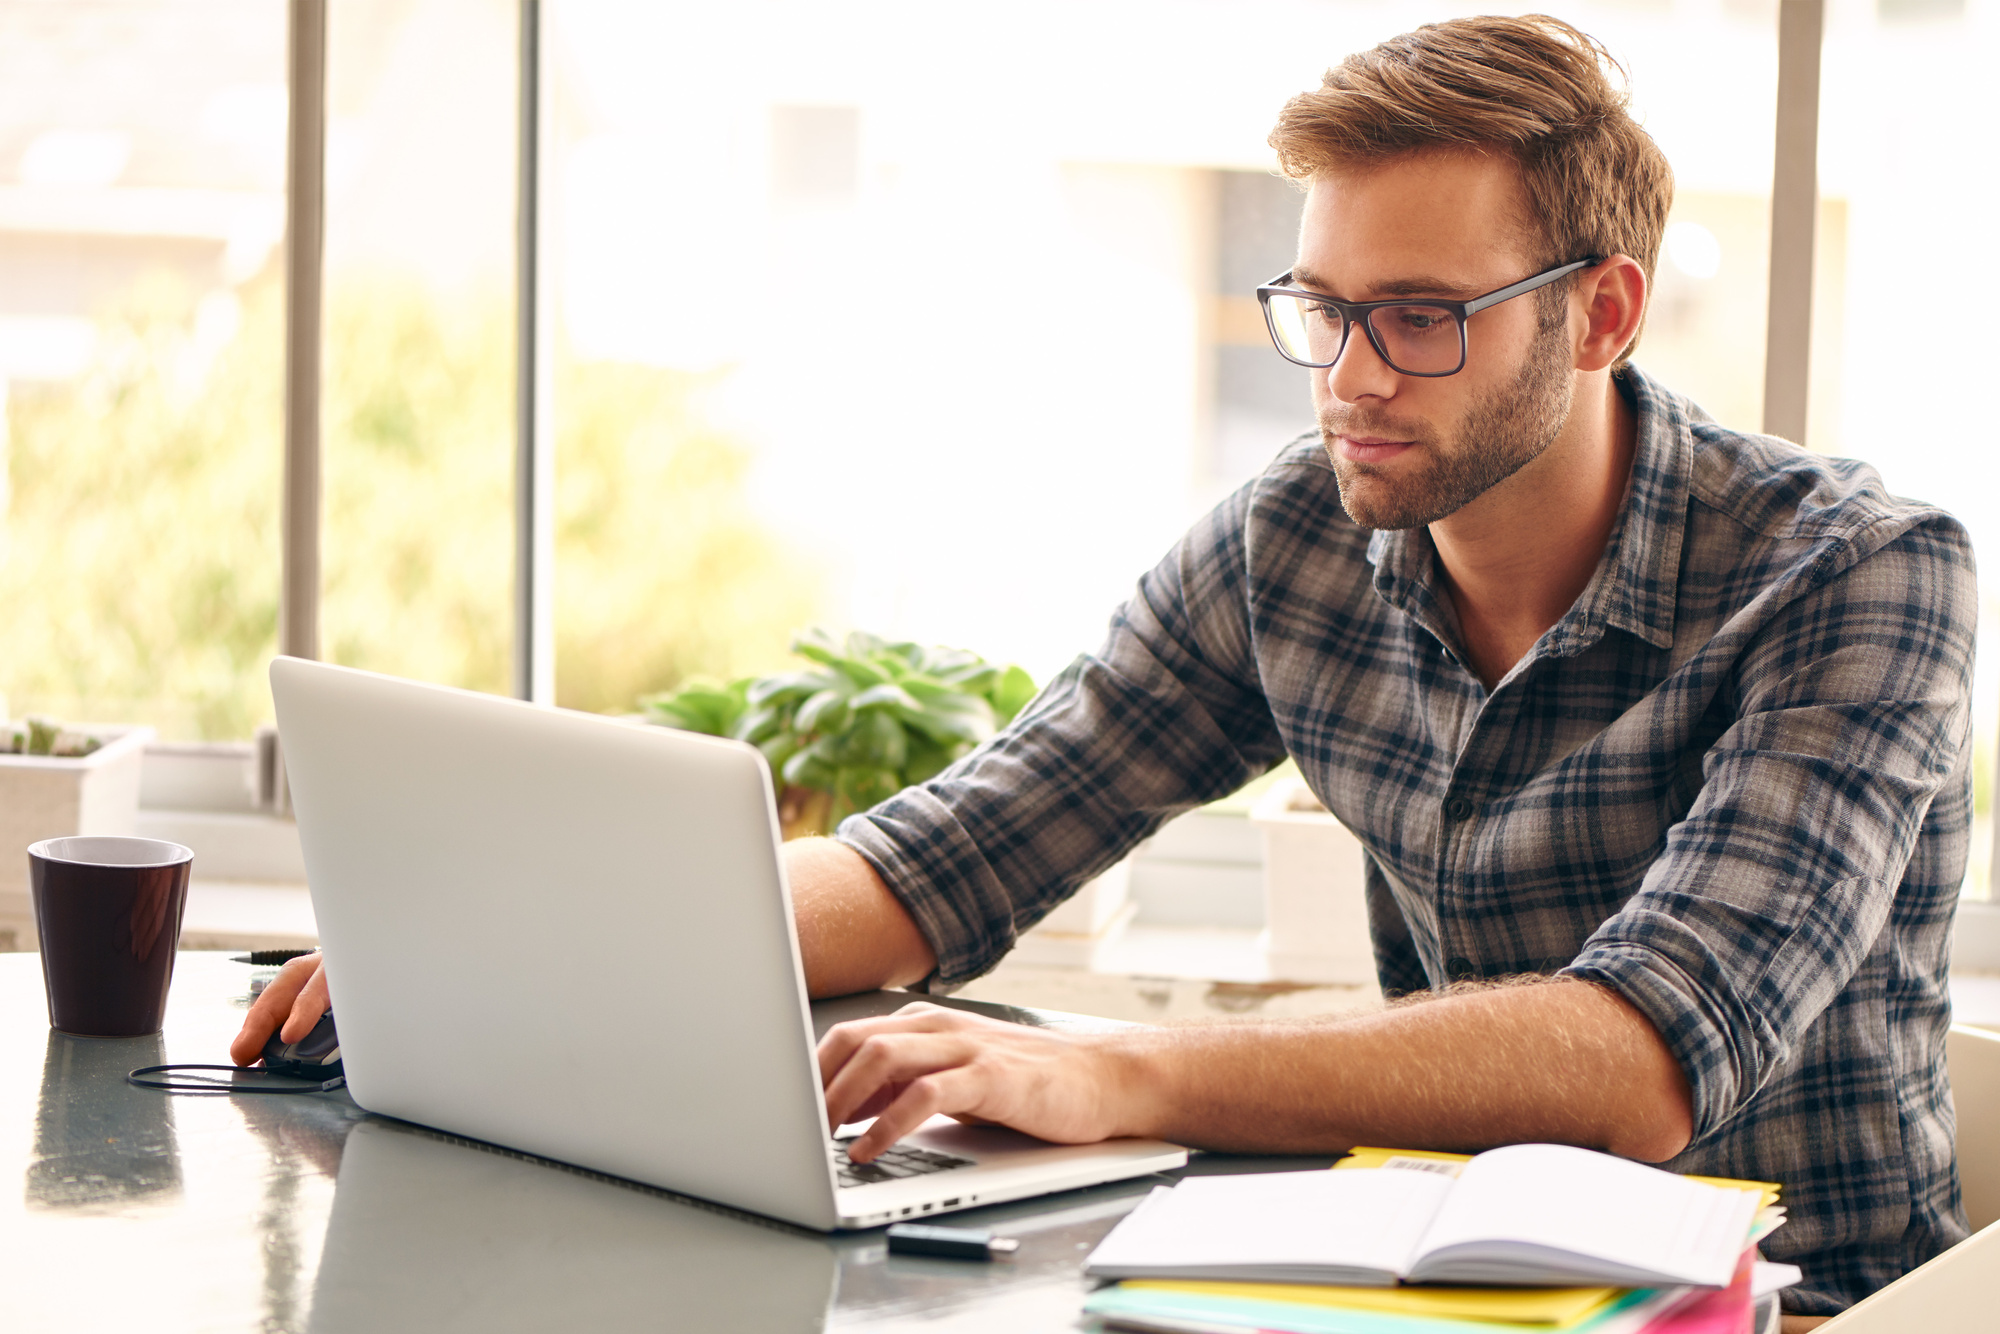 young man with glasses typing on his laptop